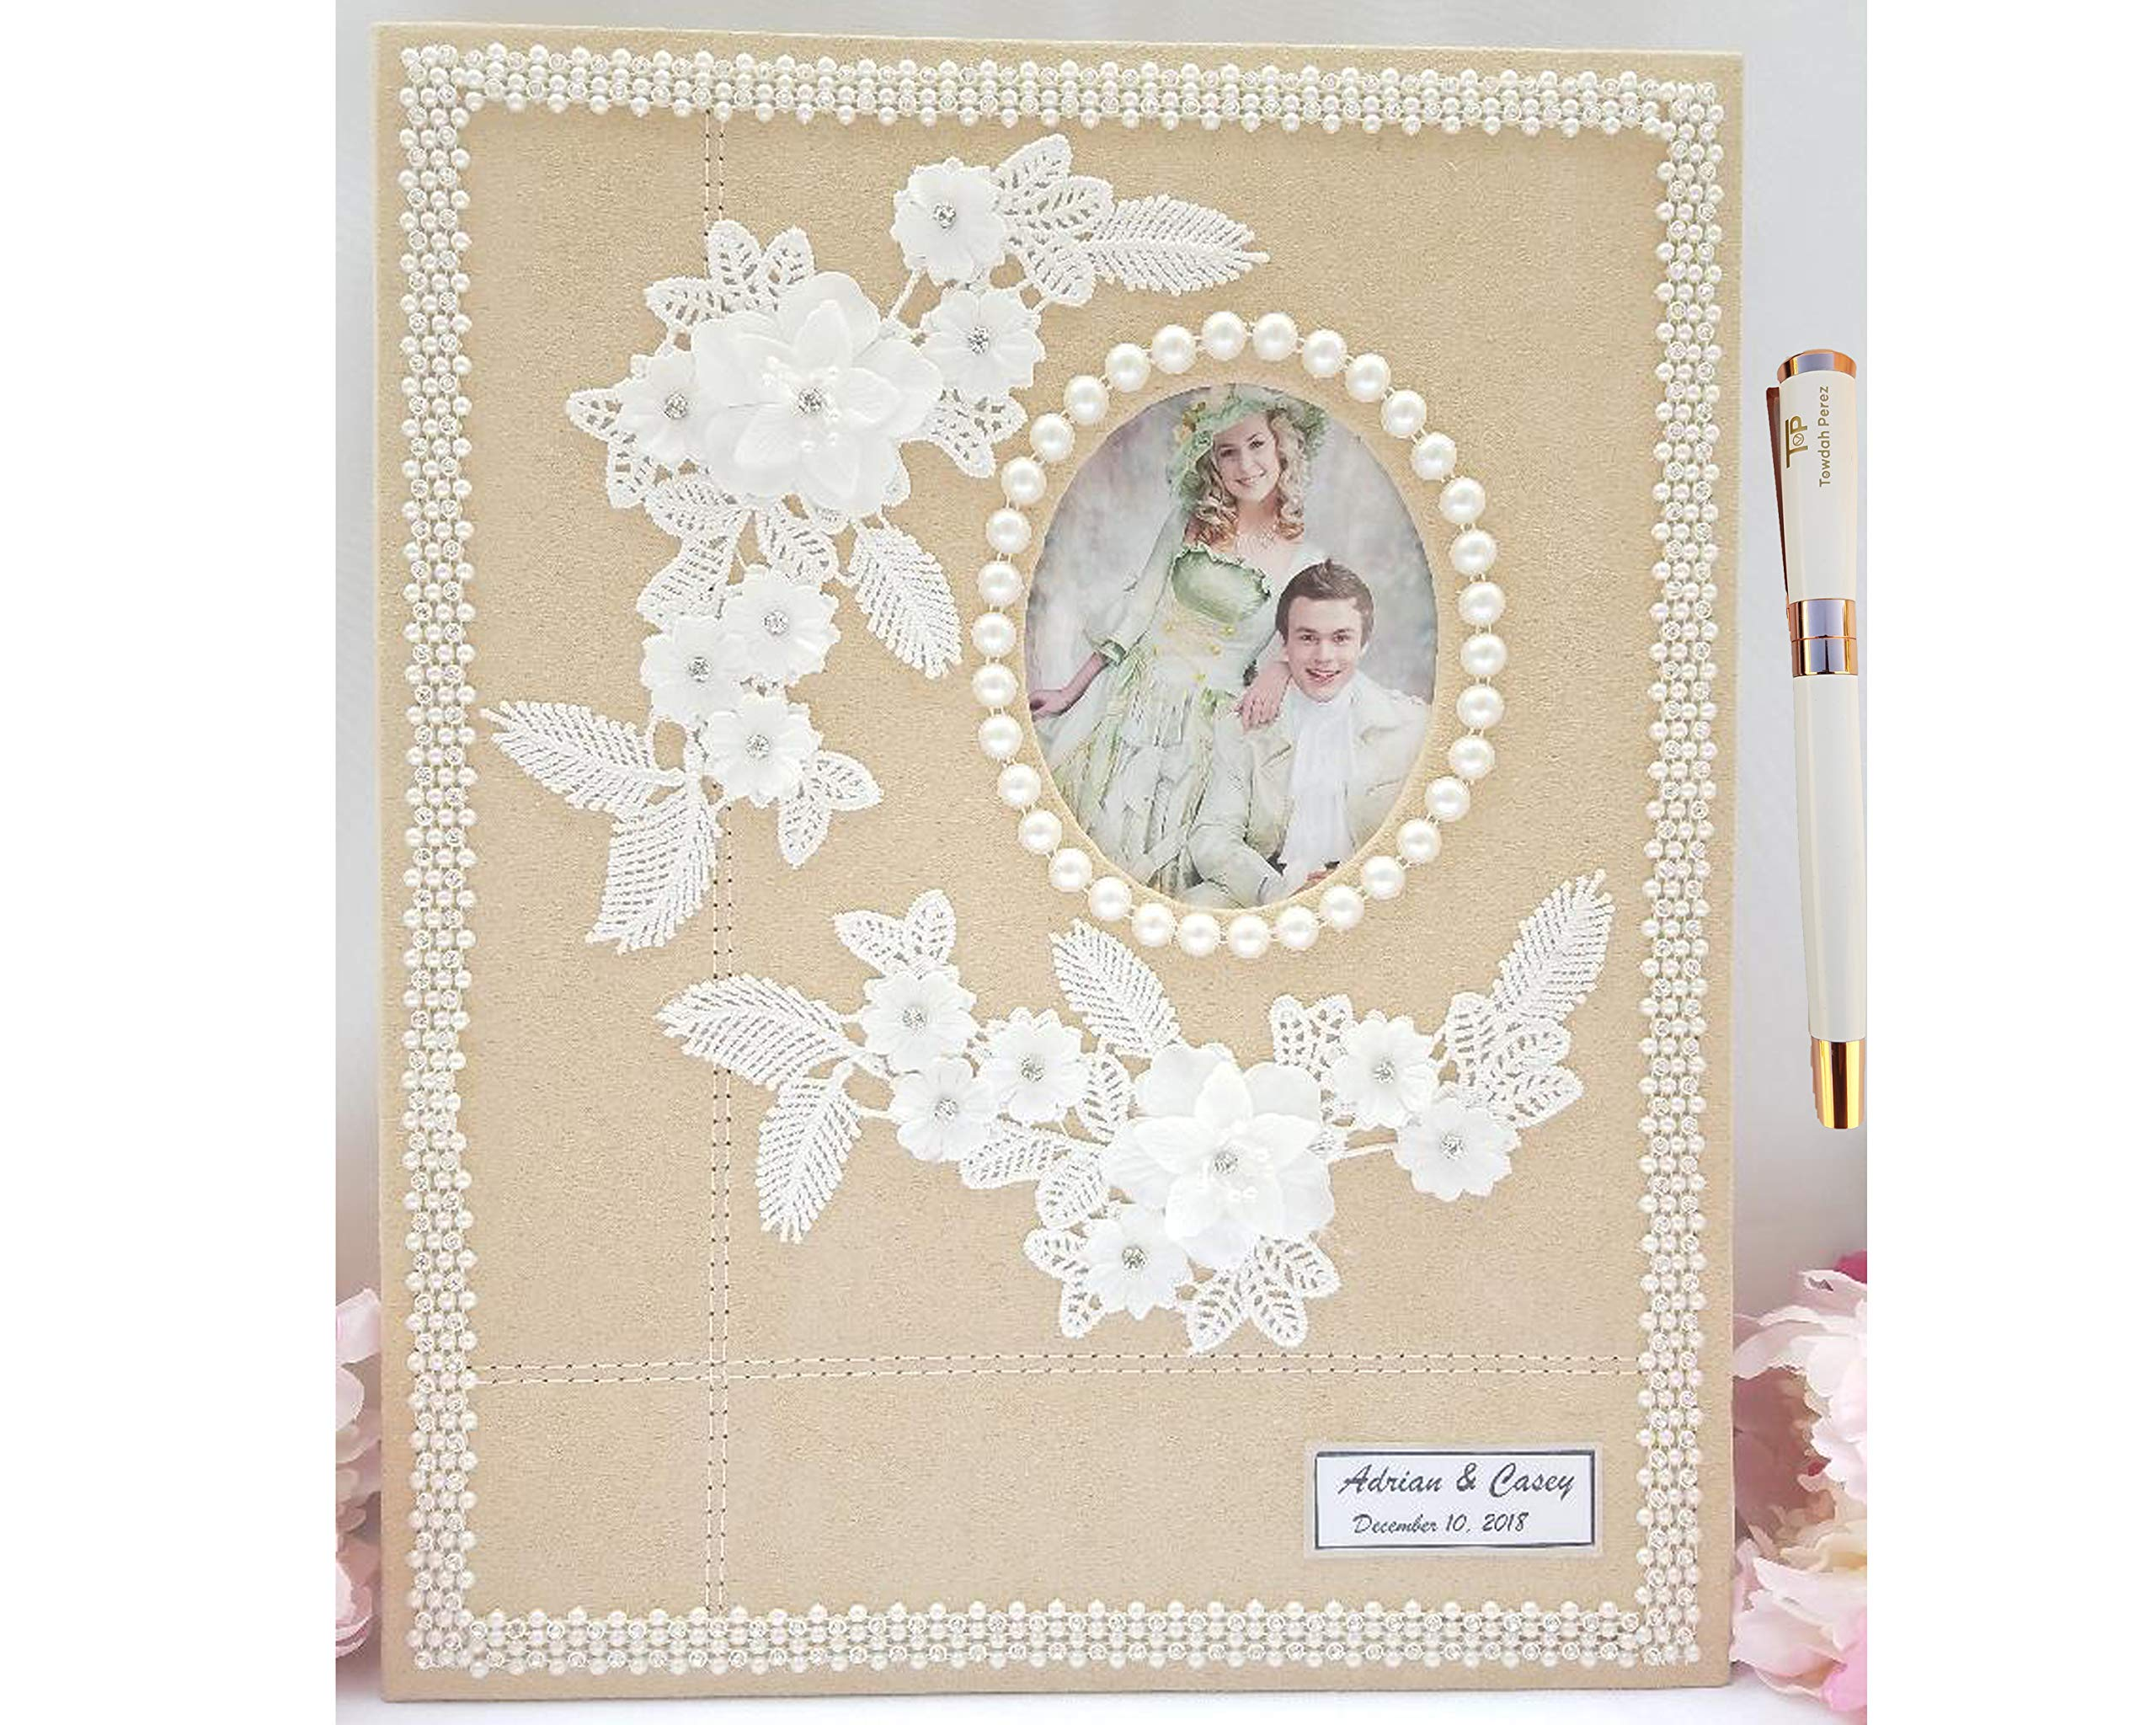 Towdah Perez Pearls Flower lace self Stick Wedding Album 40 Pages. Hand-Decorated Fabric Cover Album for 4x6, 5x7, 8x10, 8x12 Photos with Gift Box, Luxury White/Gold Pen. Customizable, personalizable by Towdah Perez